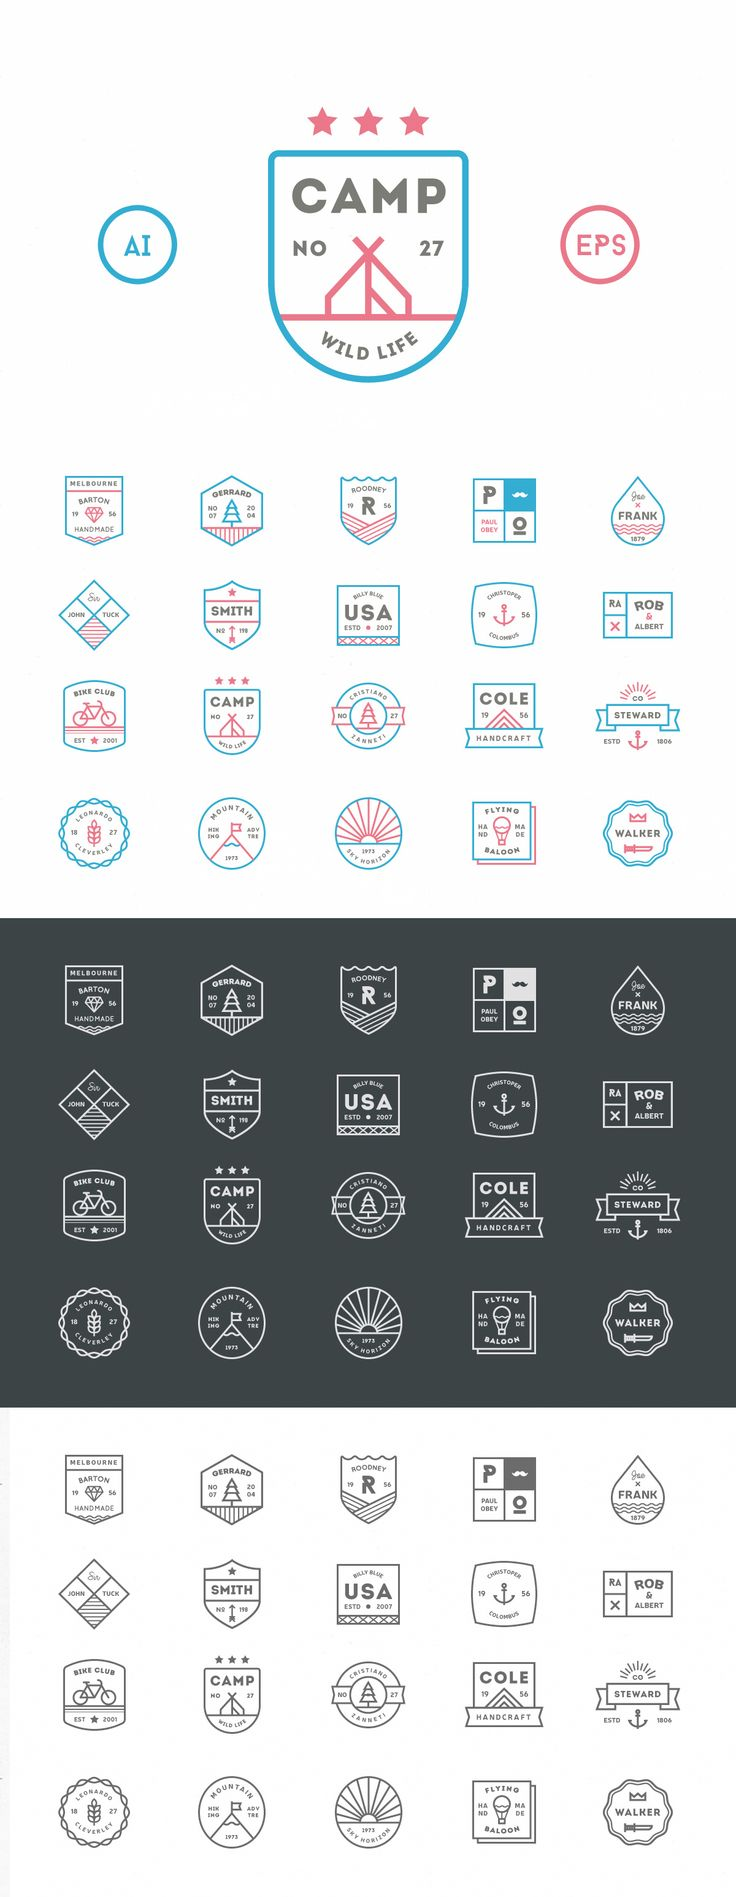 Awesome 20 Line Badges #design Download: https://creativemarket.com/vuuuds/124140-20-Line-Badges?u=ksioks